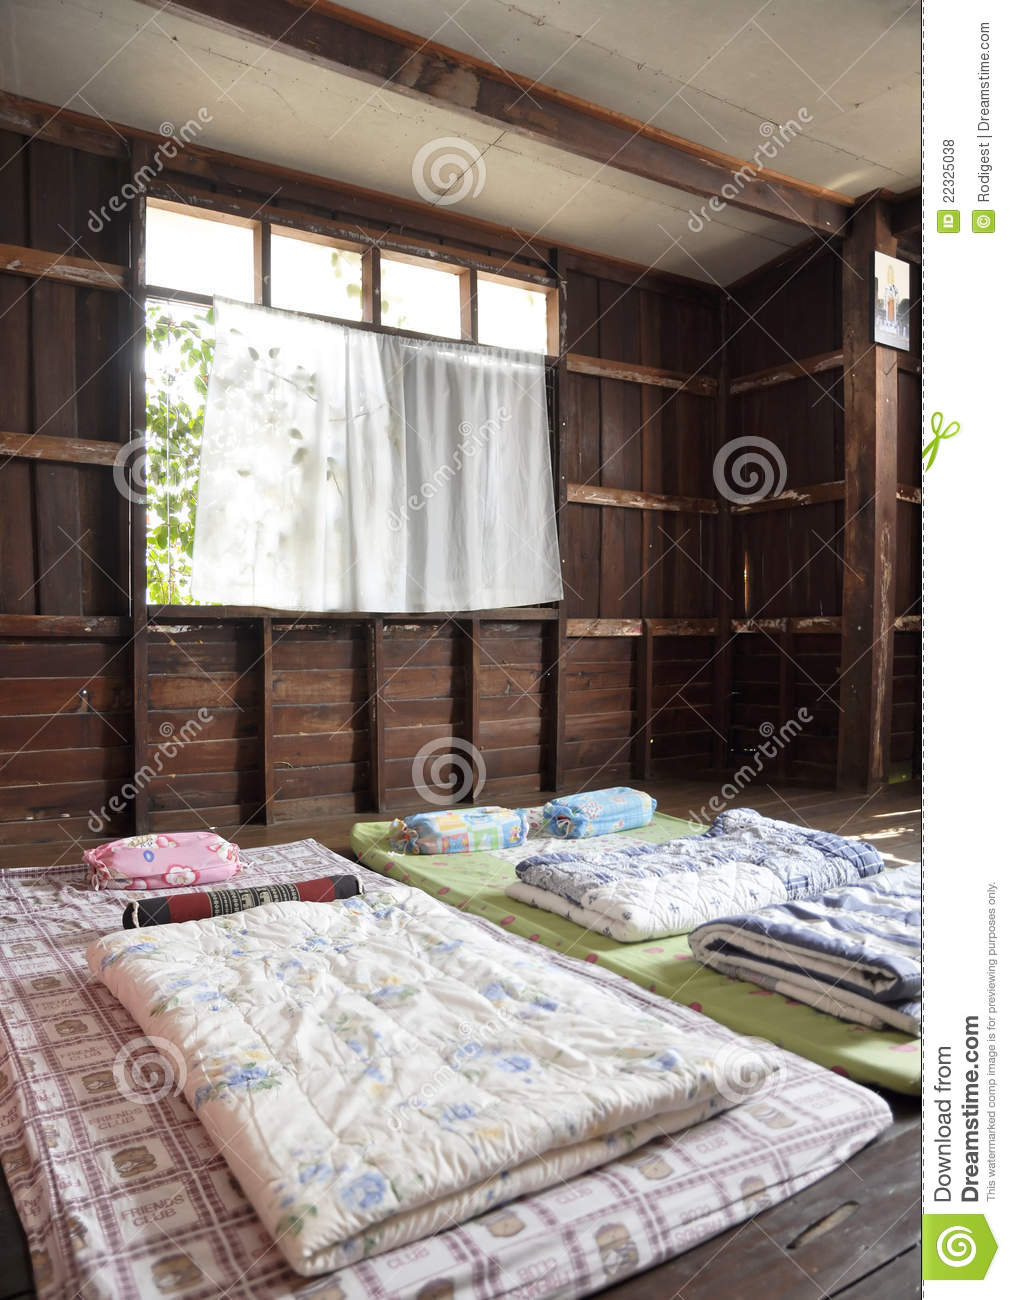 Architecture Bed House Room Local Interior Stock Photo Image Of Bright Plank 22325038